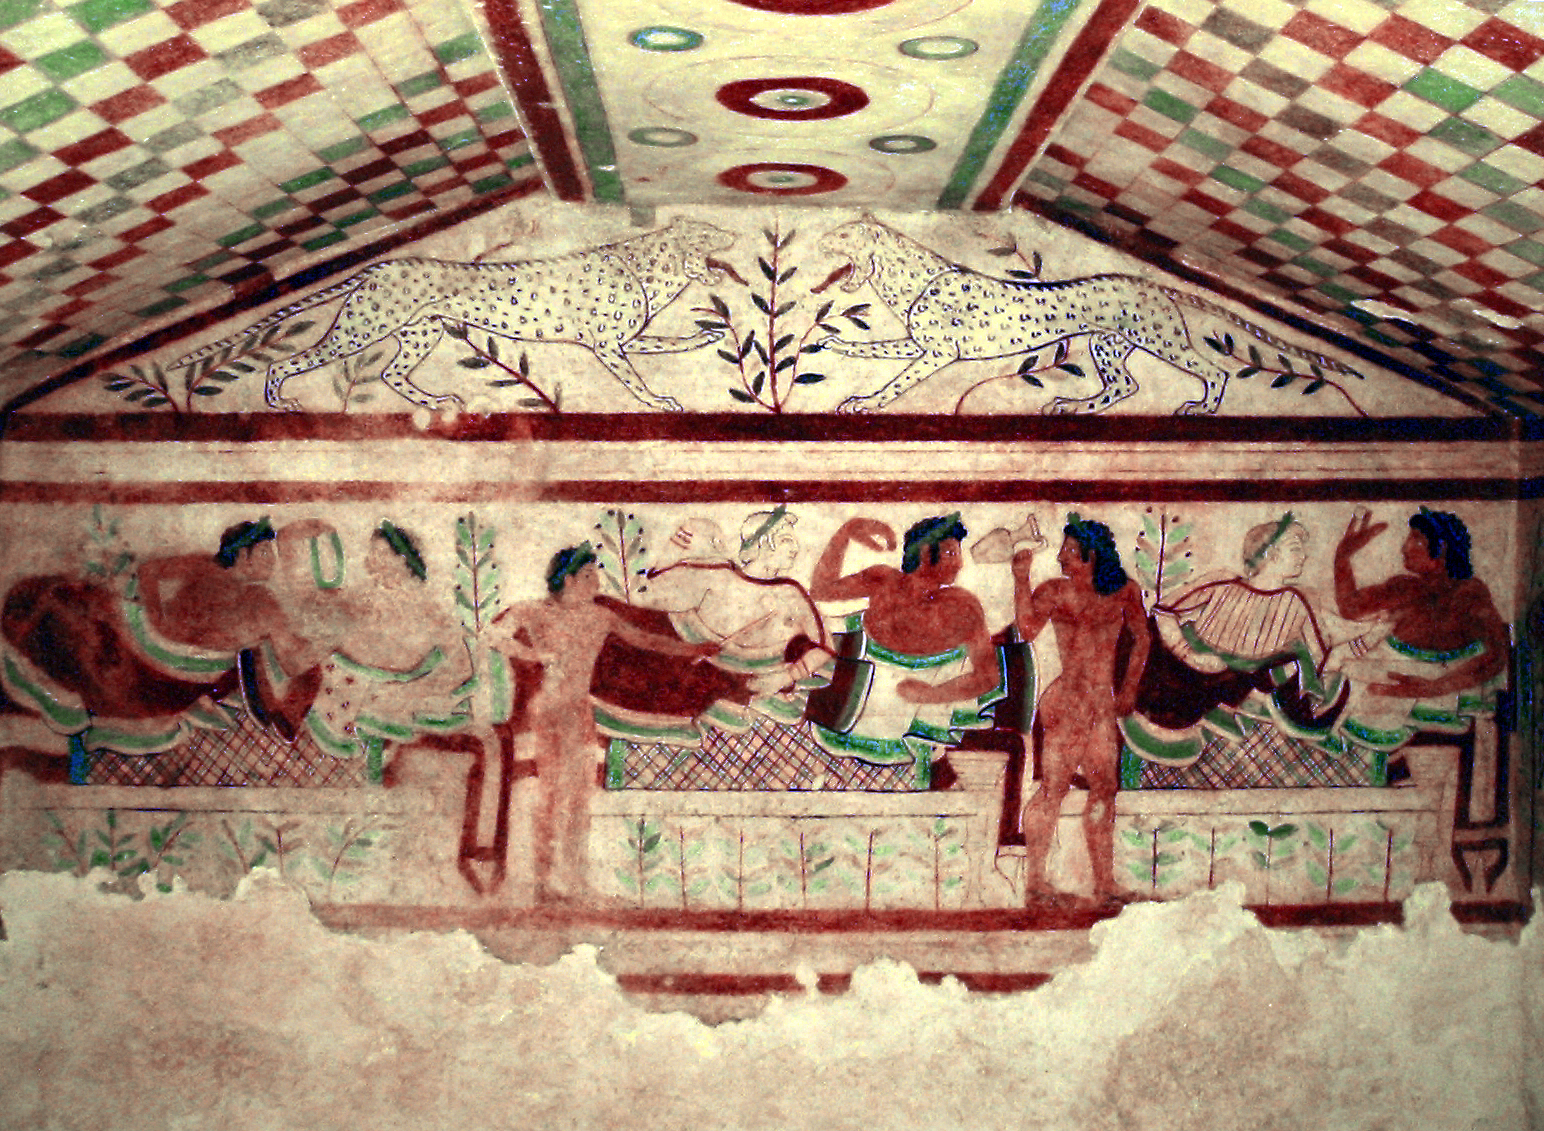 image Tarquinia_Tomb_of_the_Leopards.jpg for term side of card